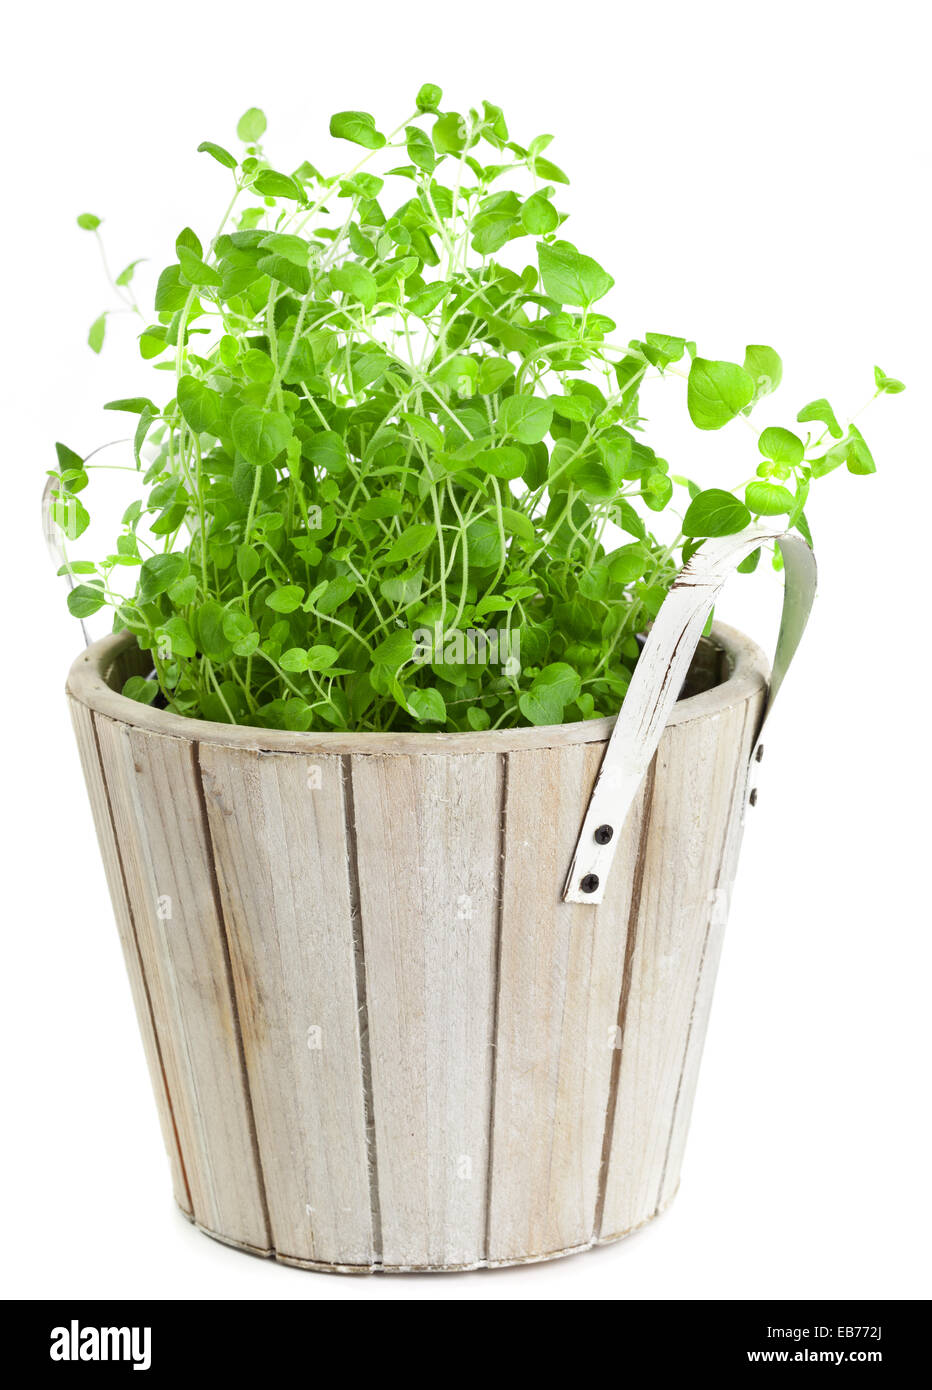 Potted marjoram over white background - Stock Image